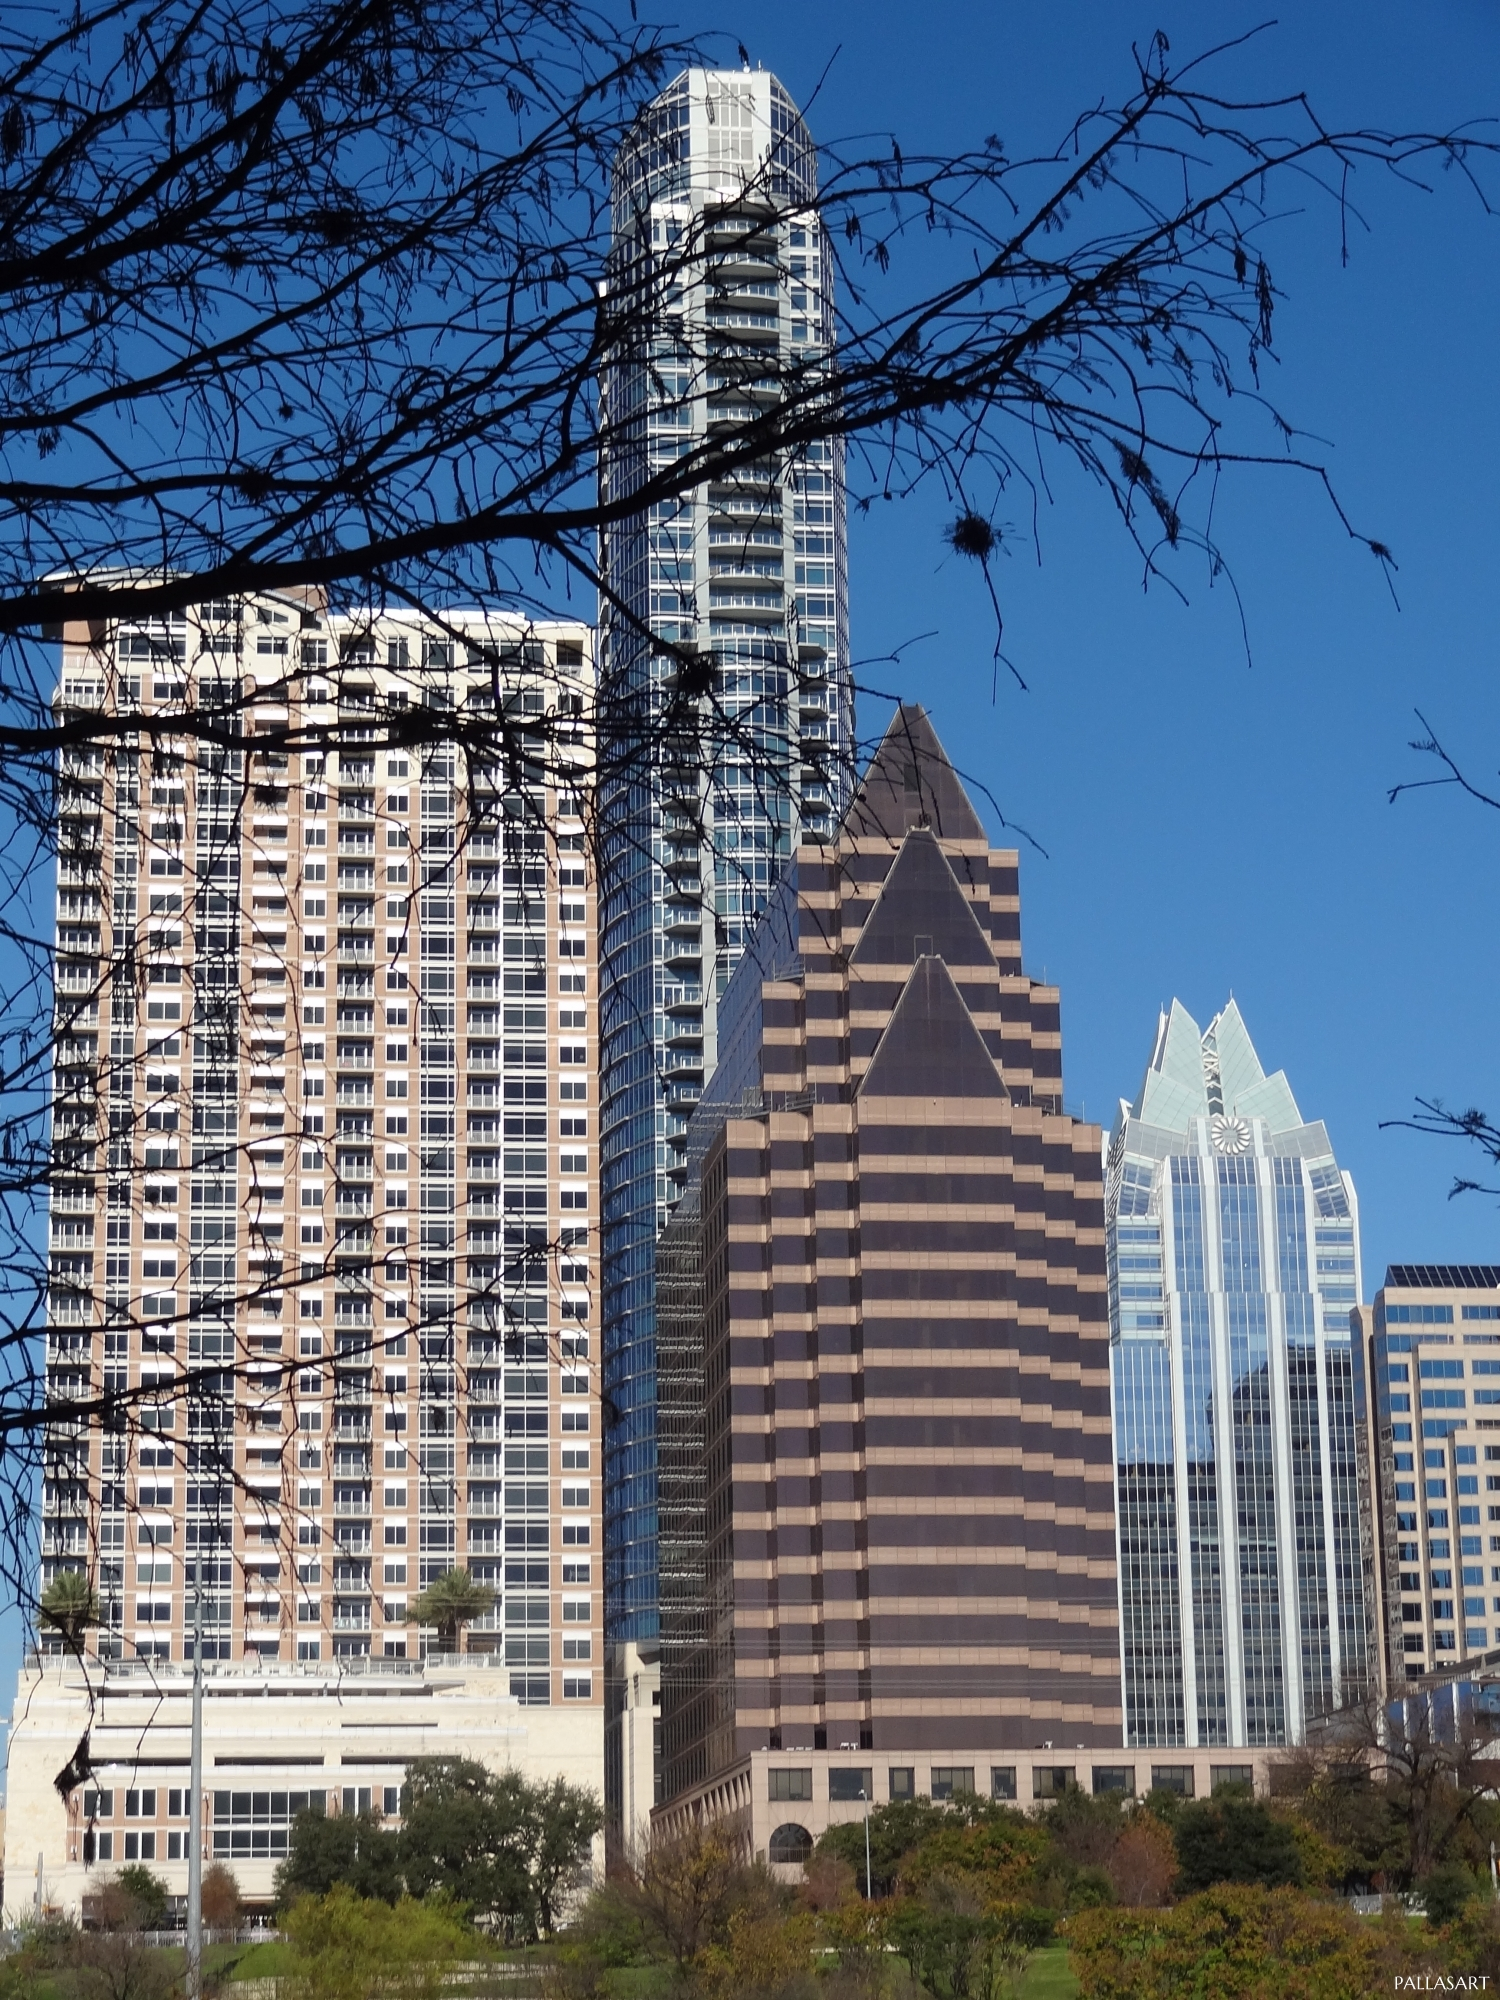 The Ashton, Austonian, 100 Congress Avenue, and Frost Bank Tower